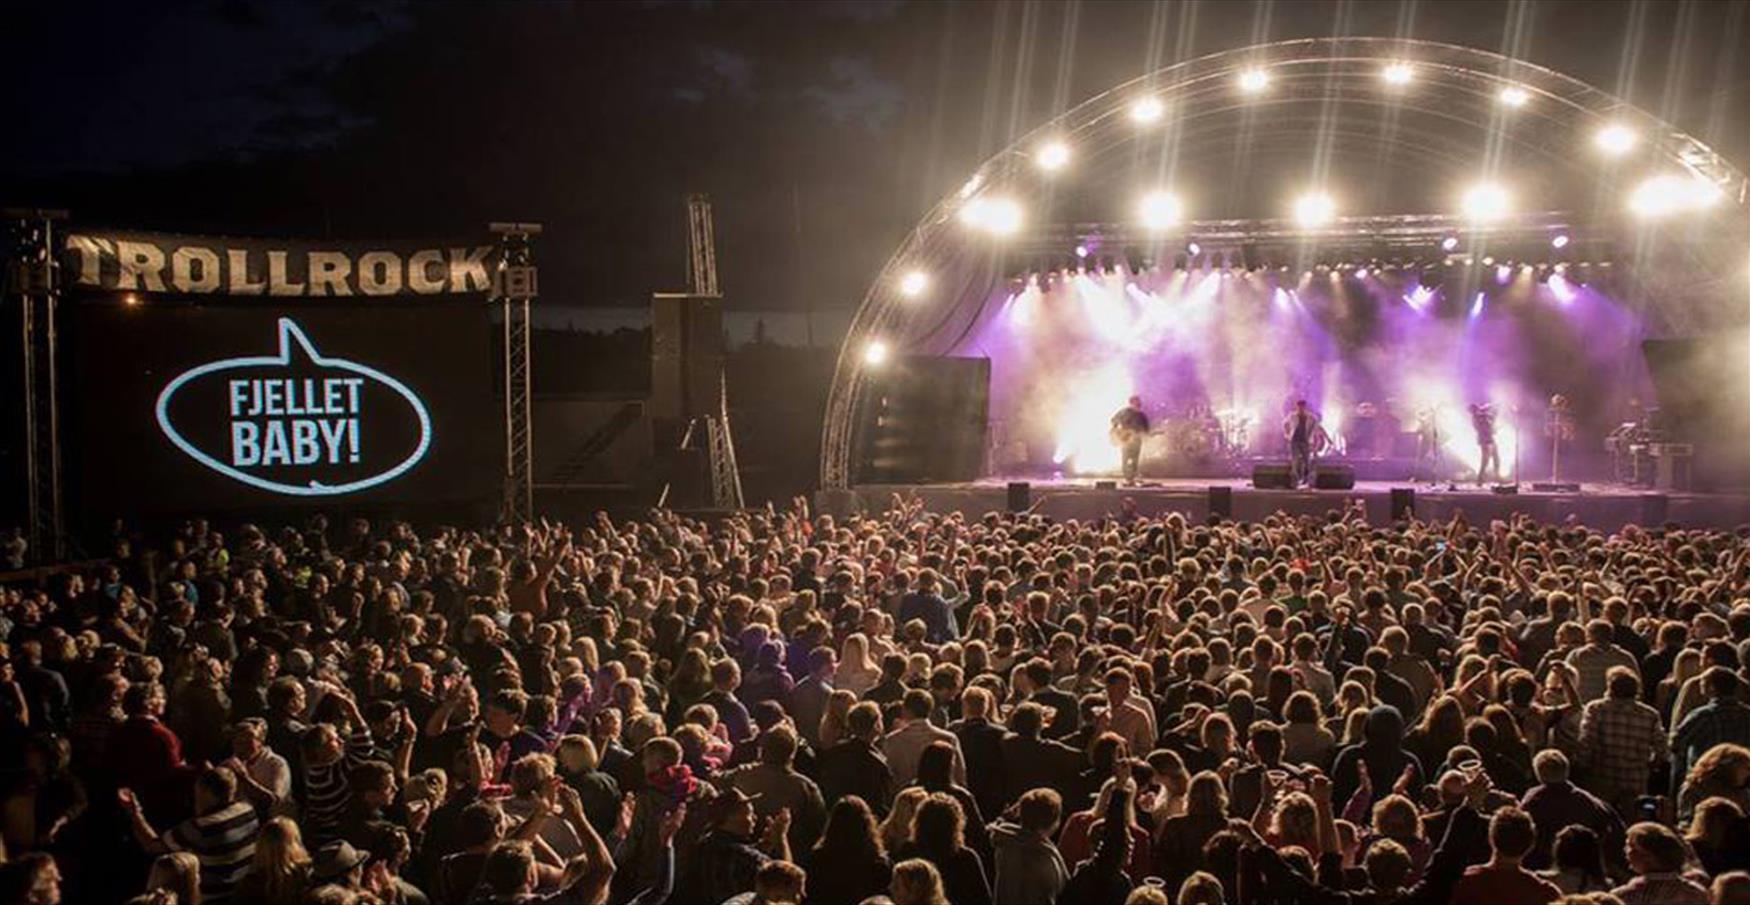 Welcome To Valdres Colorado Trailer Ke Wiring Diagram Trollrock Is A Mountain Rock Music Festival In Beitostlen With Great Ambiente And An Impressive